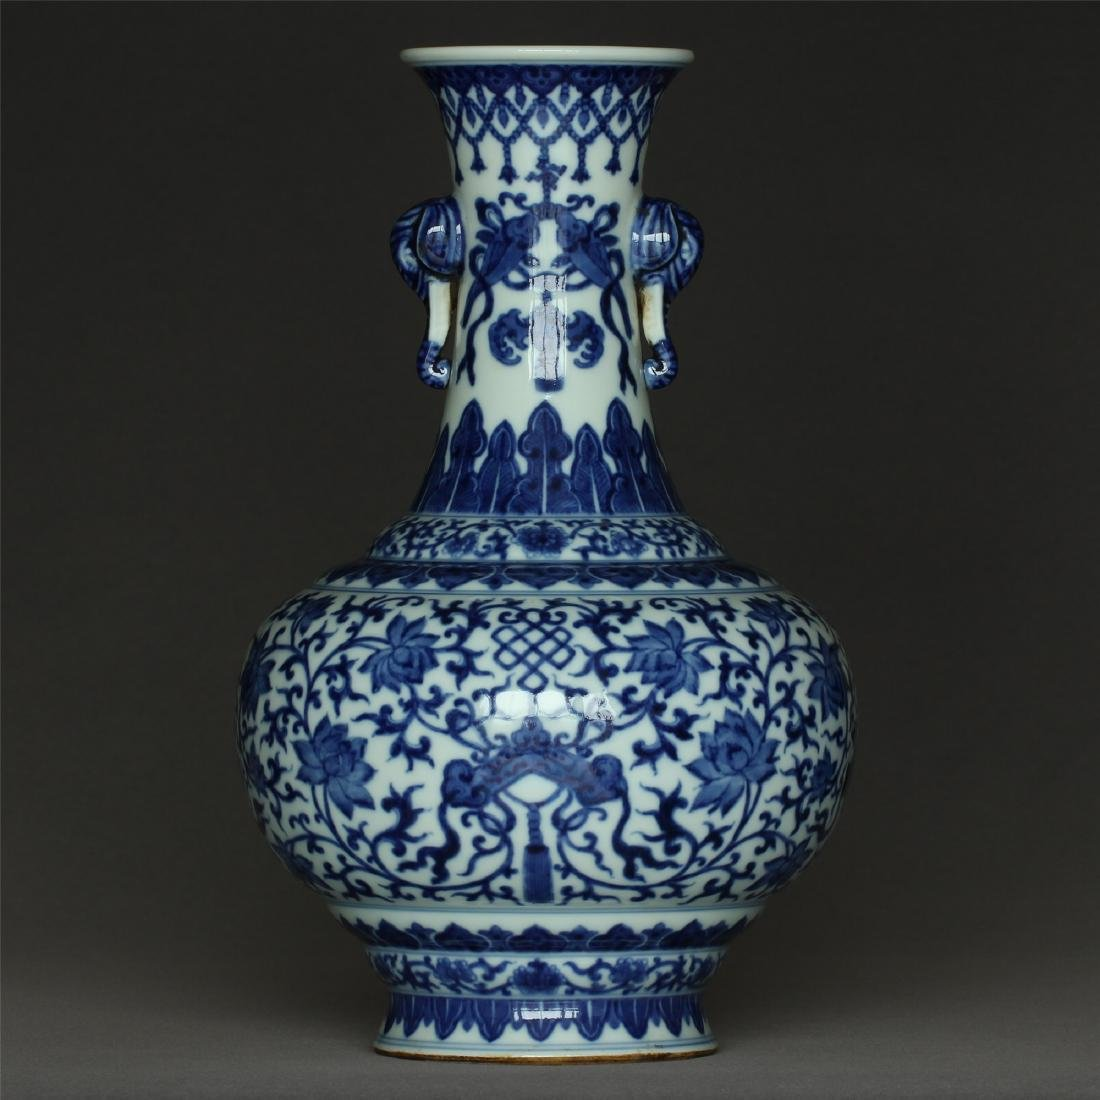 Chinese blue and white porcelain vase of Qing Dynasty